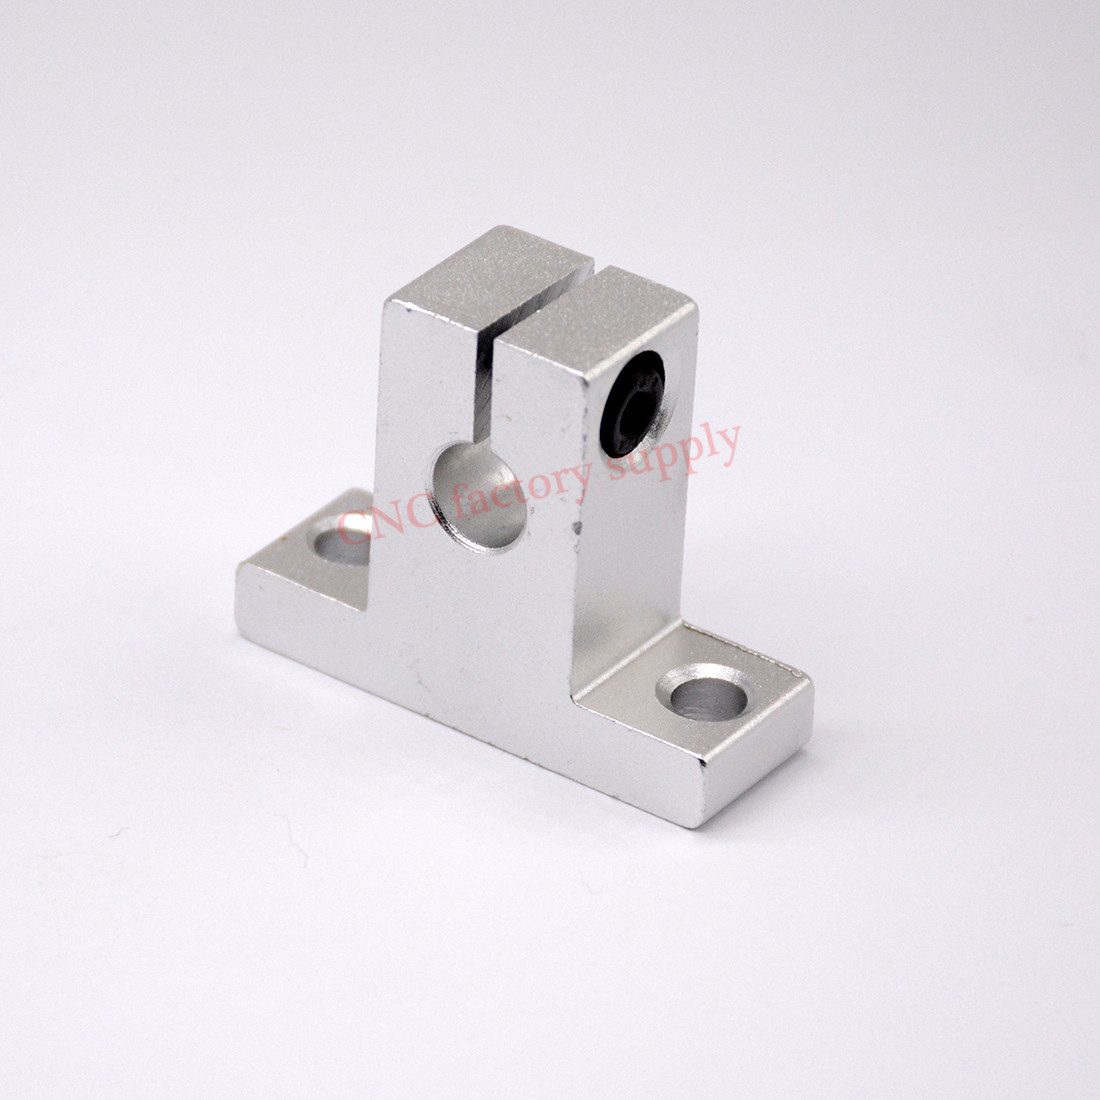 4pcs/lot Free Shipping SK35 35mm linear bearing rail shaft support XYZ Table CNC Router SH35A стоимость